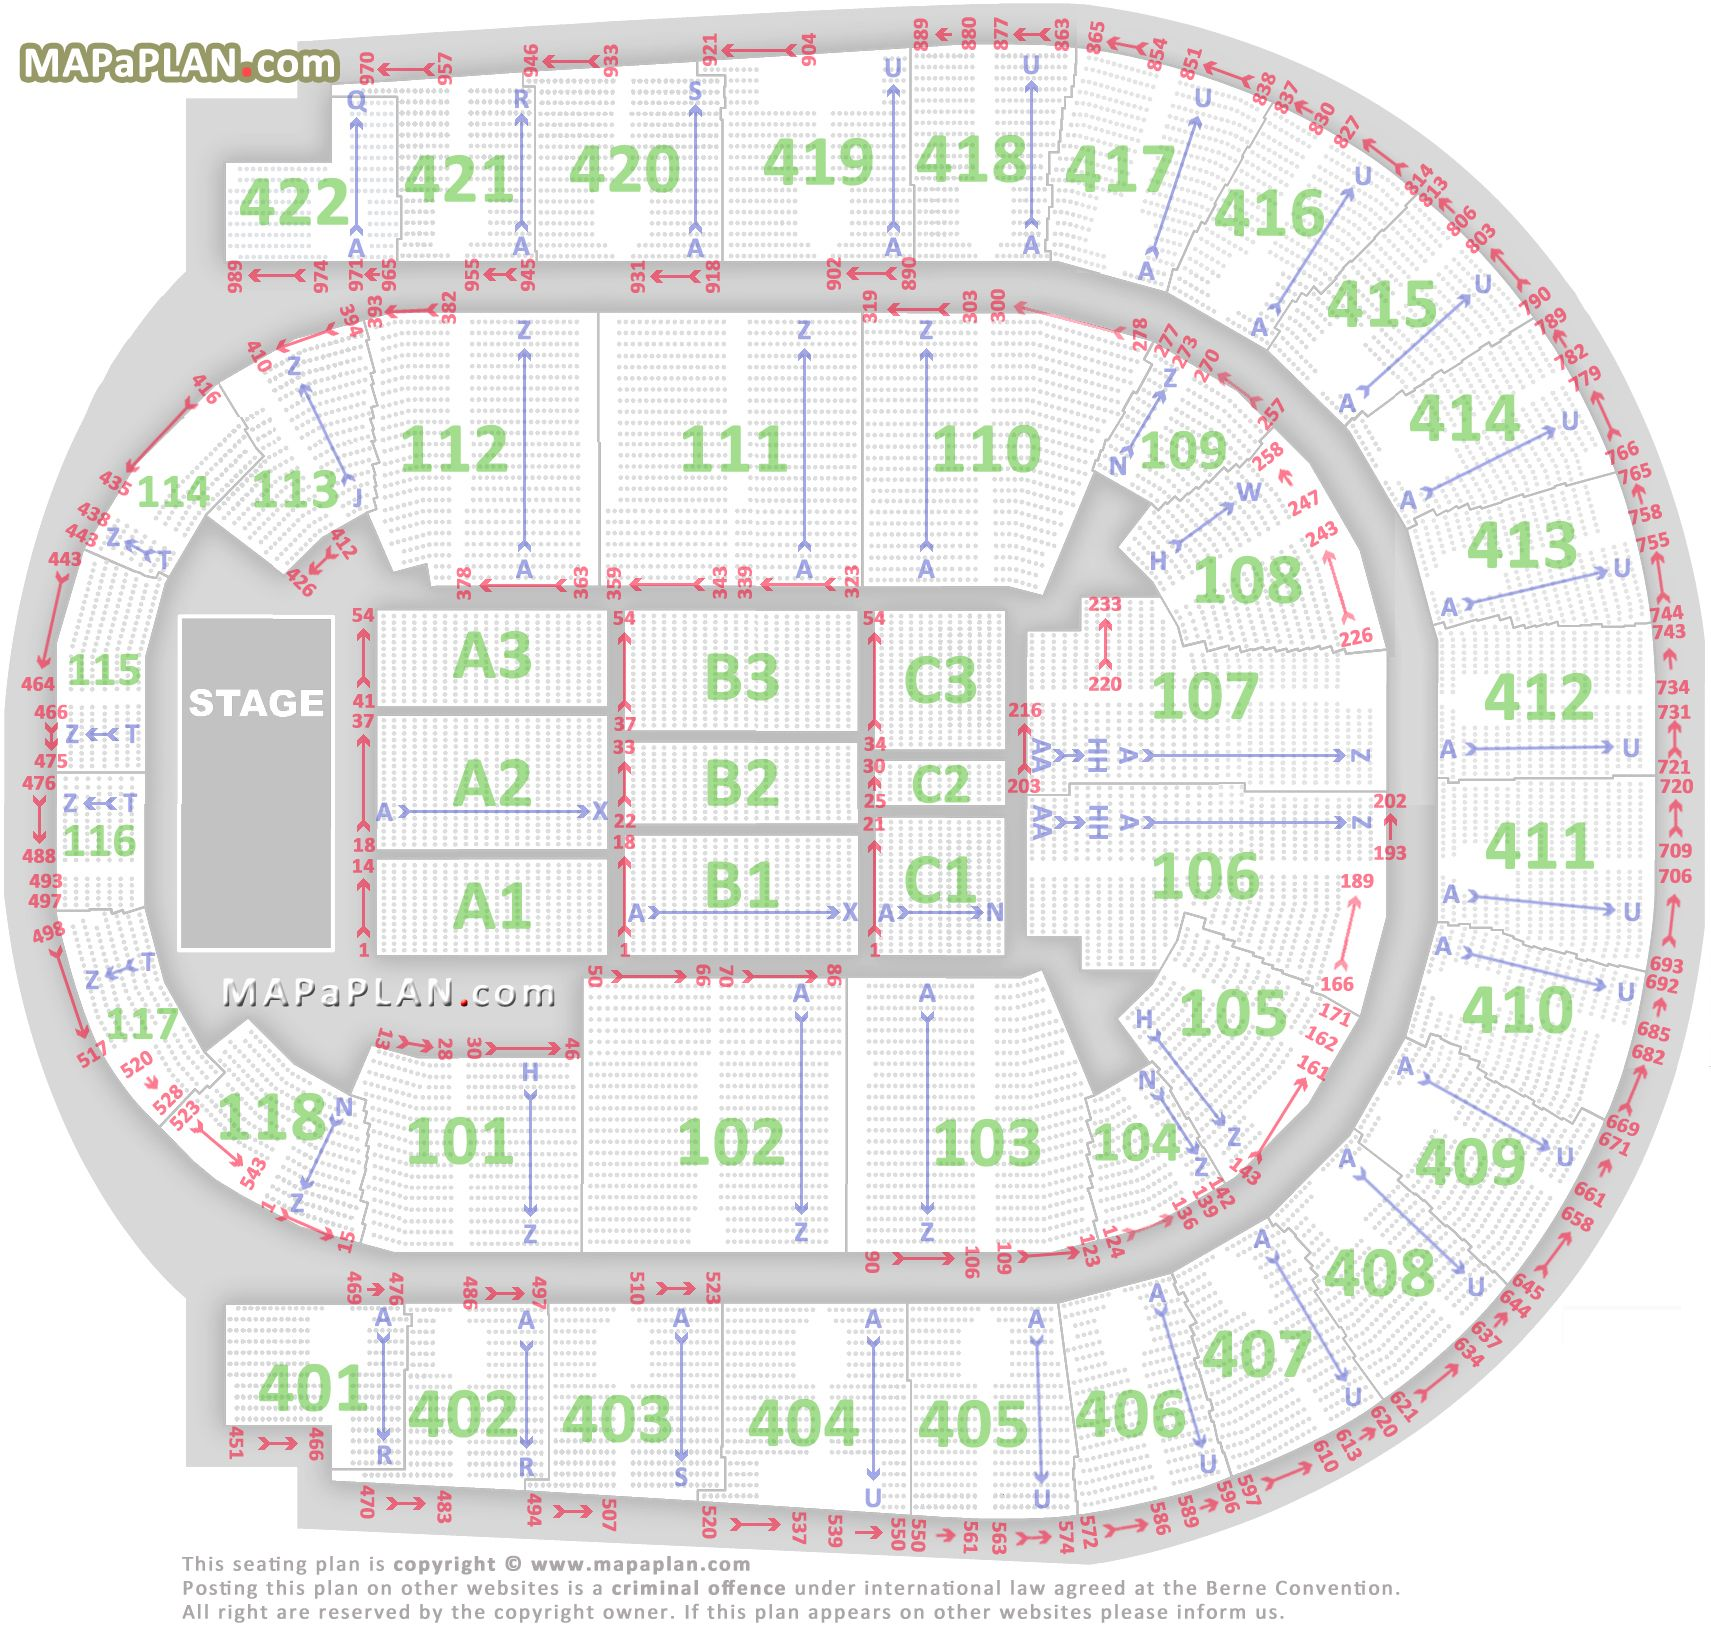 O2 Seating Map The O2 Arena London seating plan Detailed seats rows and blocks  O2 Seating Map